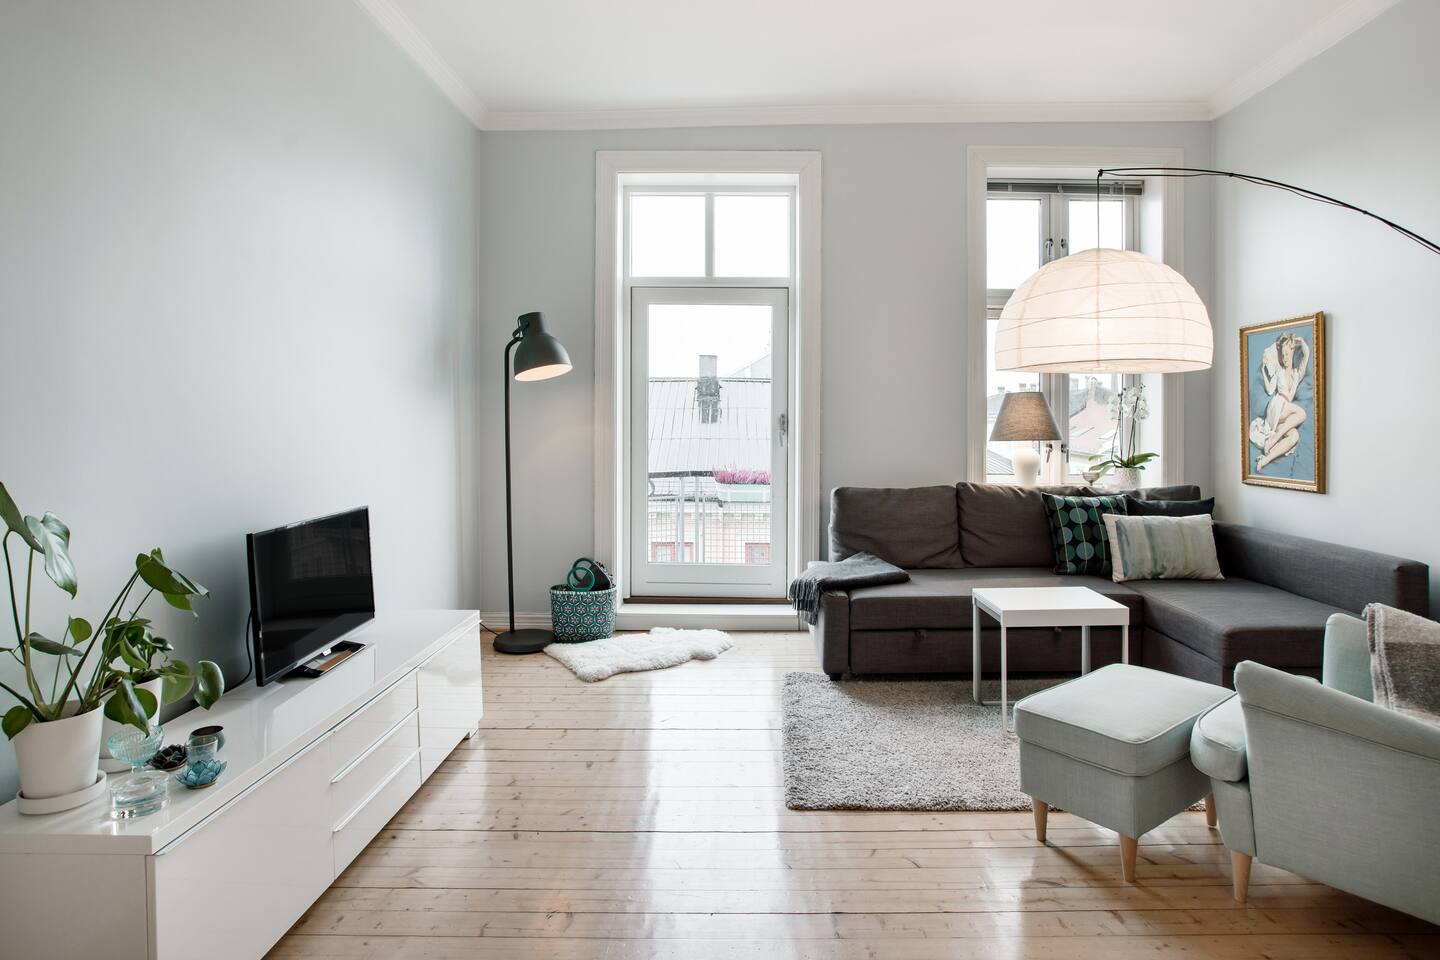 Oslo Norway Airbnb